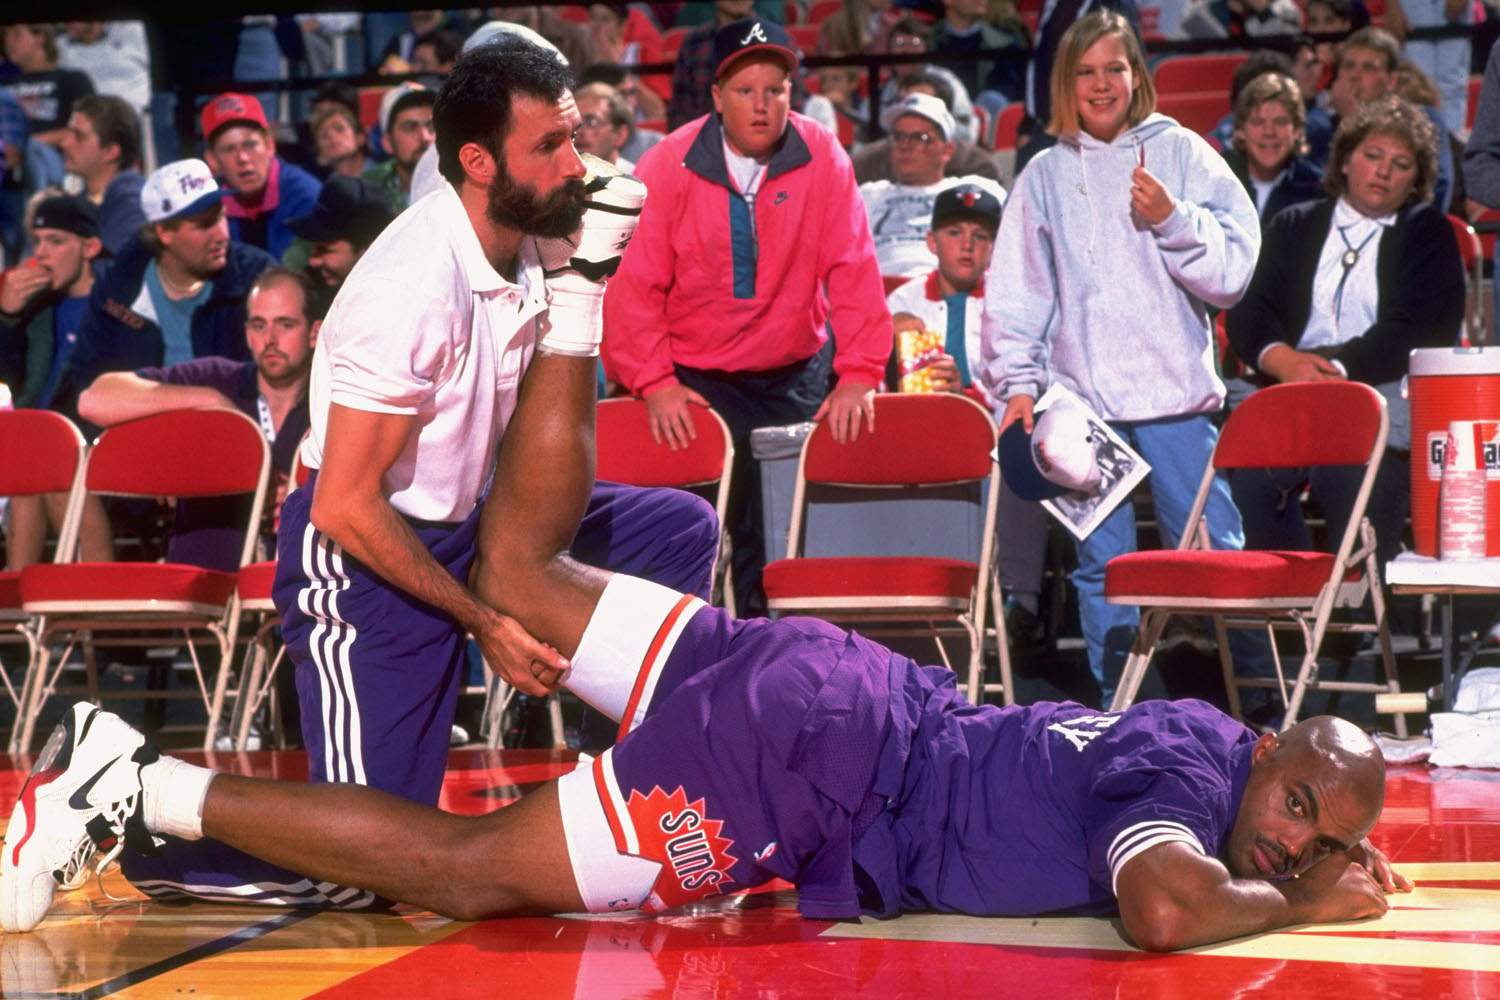 Charles Barkley gets worked on by team trainers on the sidelines during a game against the Milwaukee Bucks.